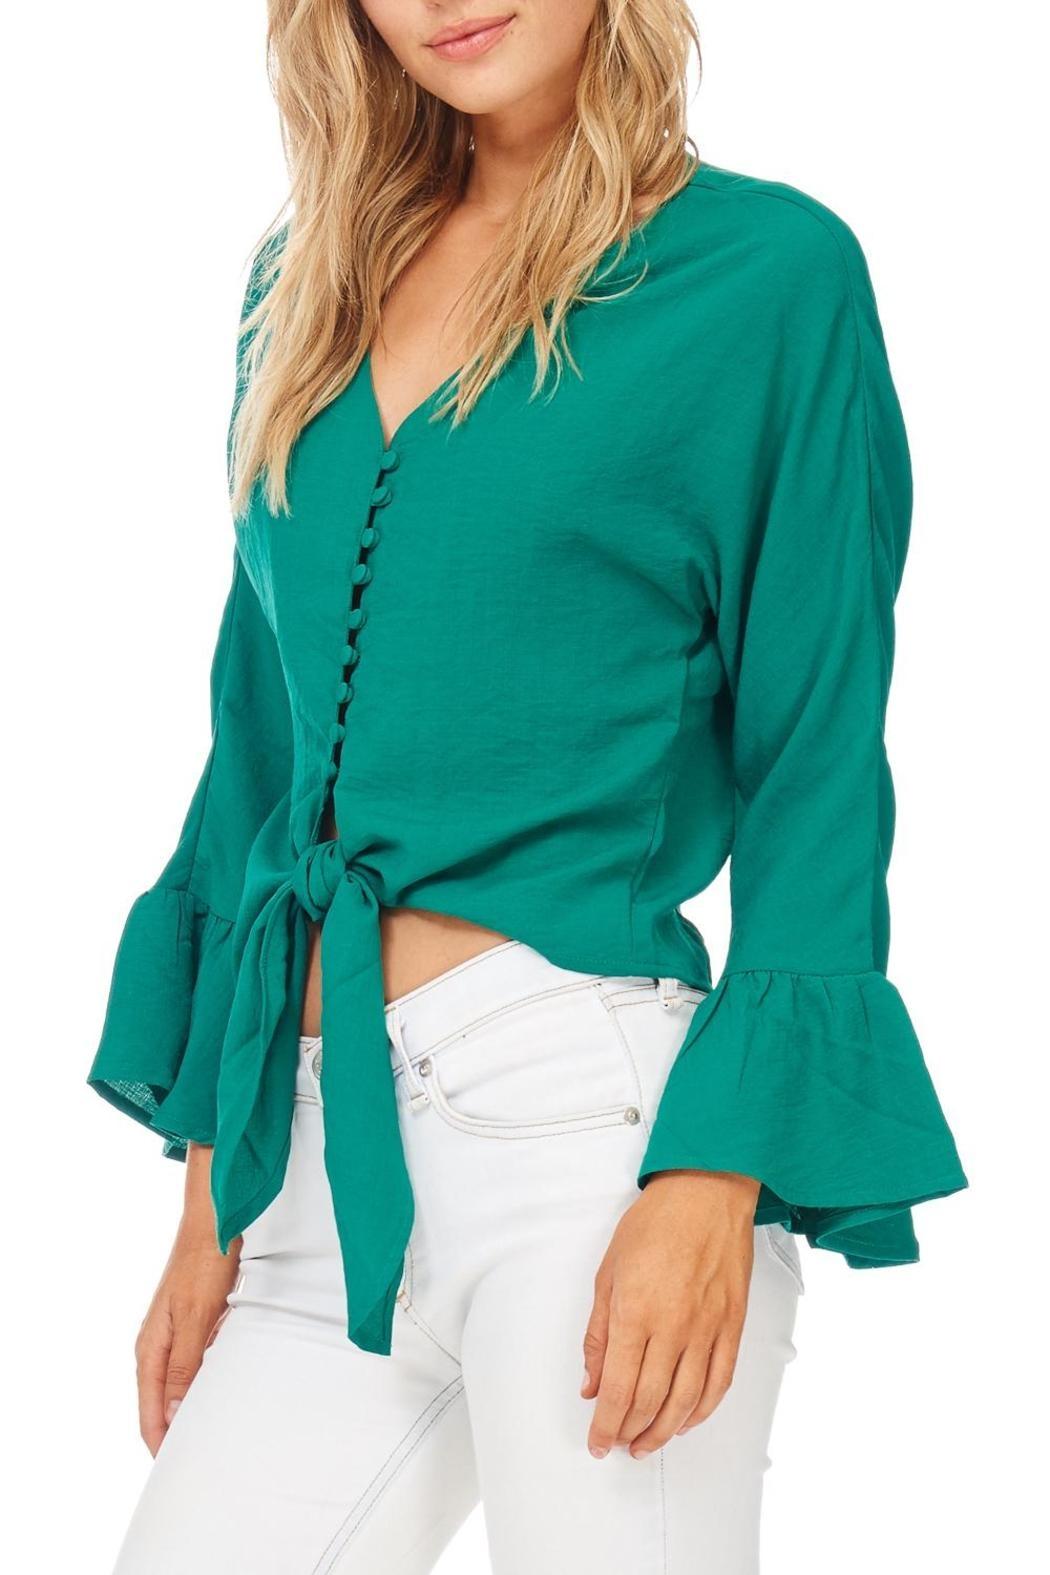 Miss Love Green Front Tie Blouse - Front Full Image